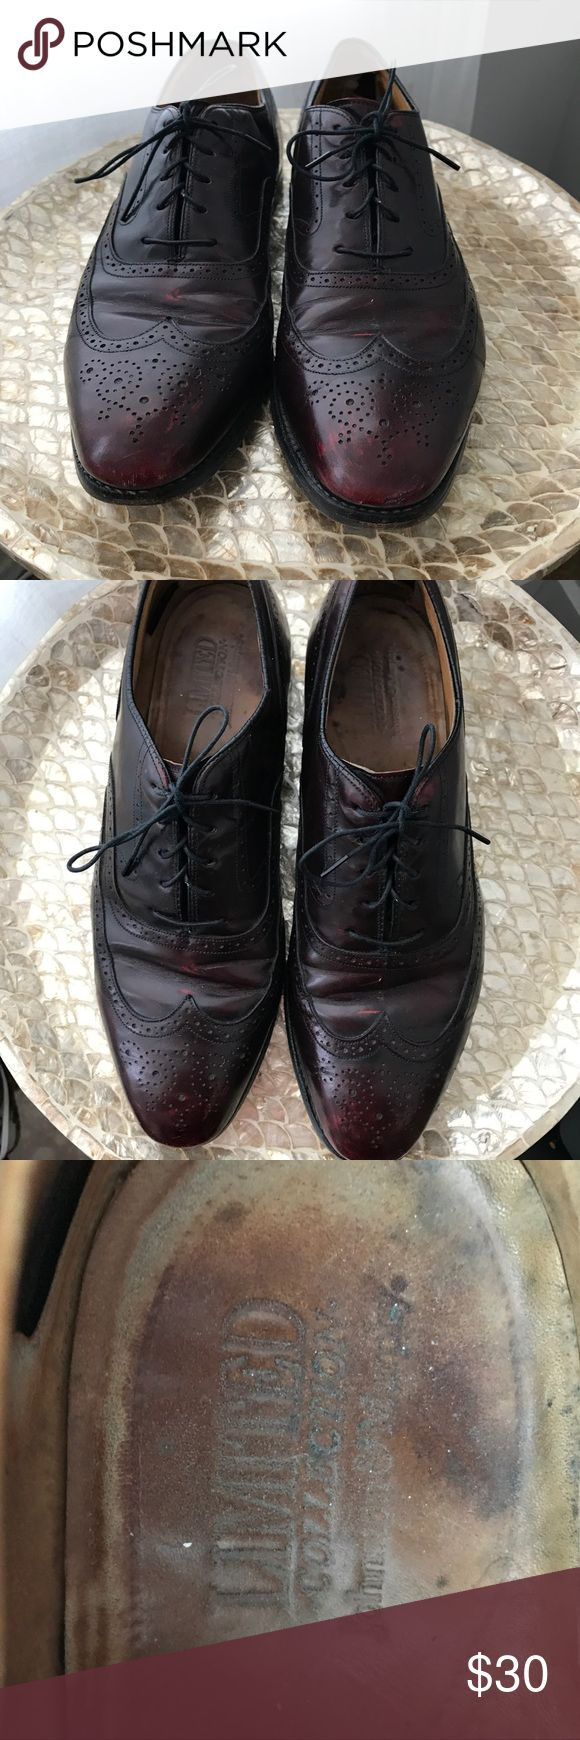 Limited Collection Johnson and Murphy Loafers Limited Collection Loafers. Black with red accent. Insole can be easily repaired. High quality shoes! Johnson & Murphy Shoes Flats & Loafers